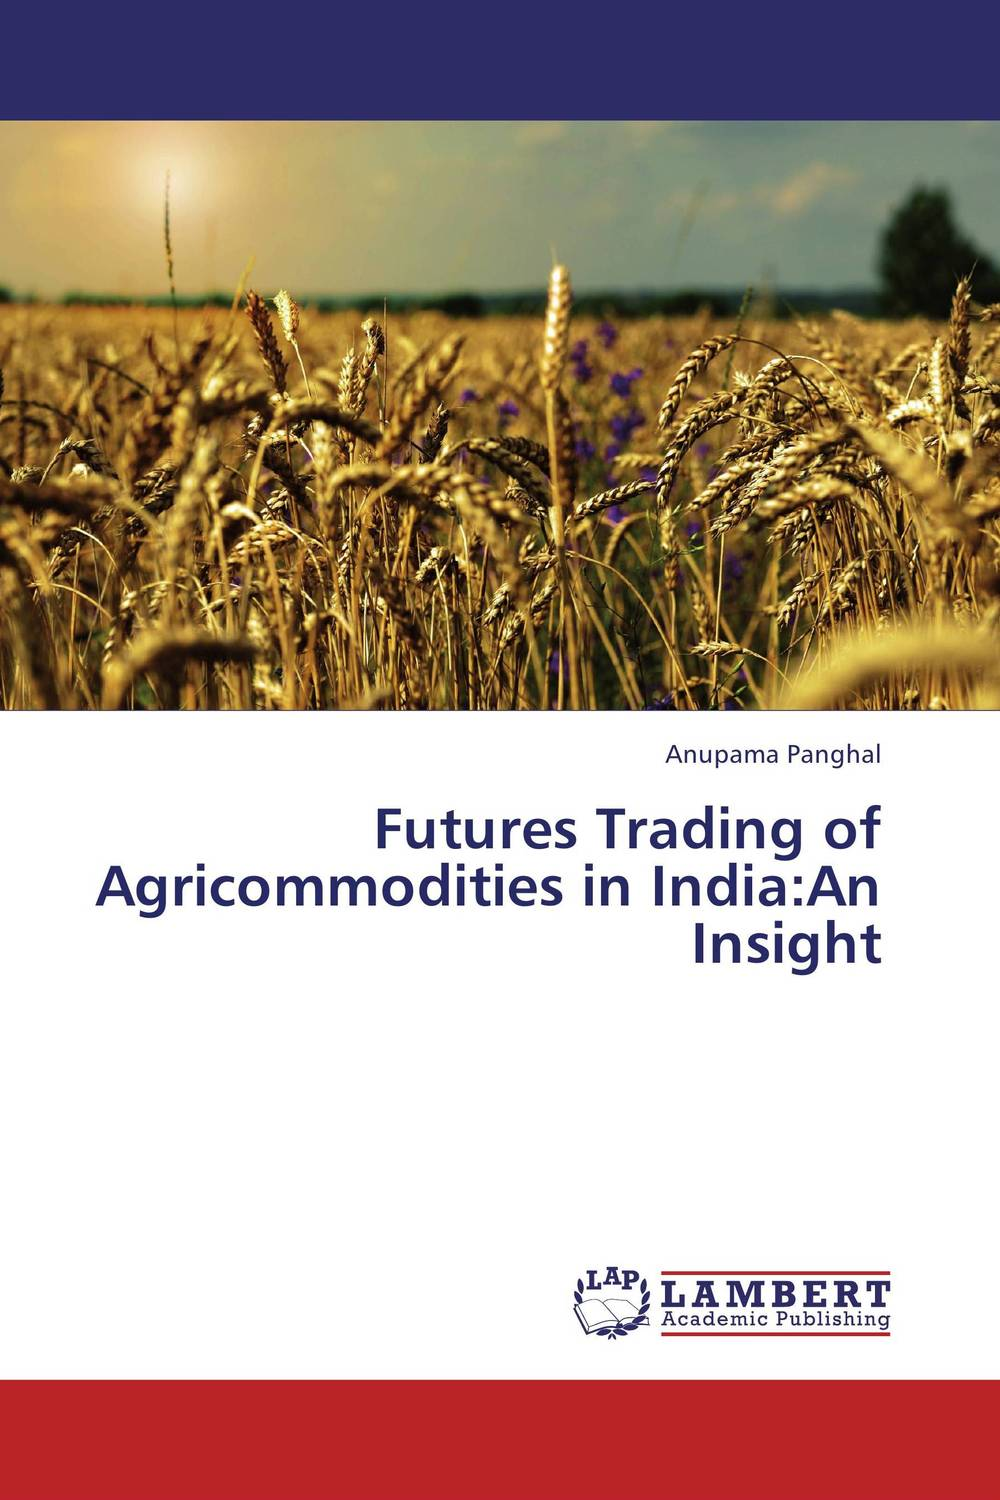 Futures Trading of Agricommodities in India:An Insight pretimaya samanta futures trading and spot market volatility in india